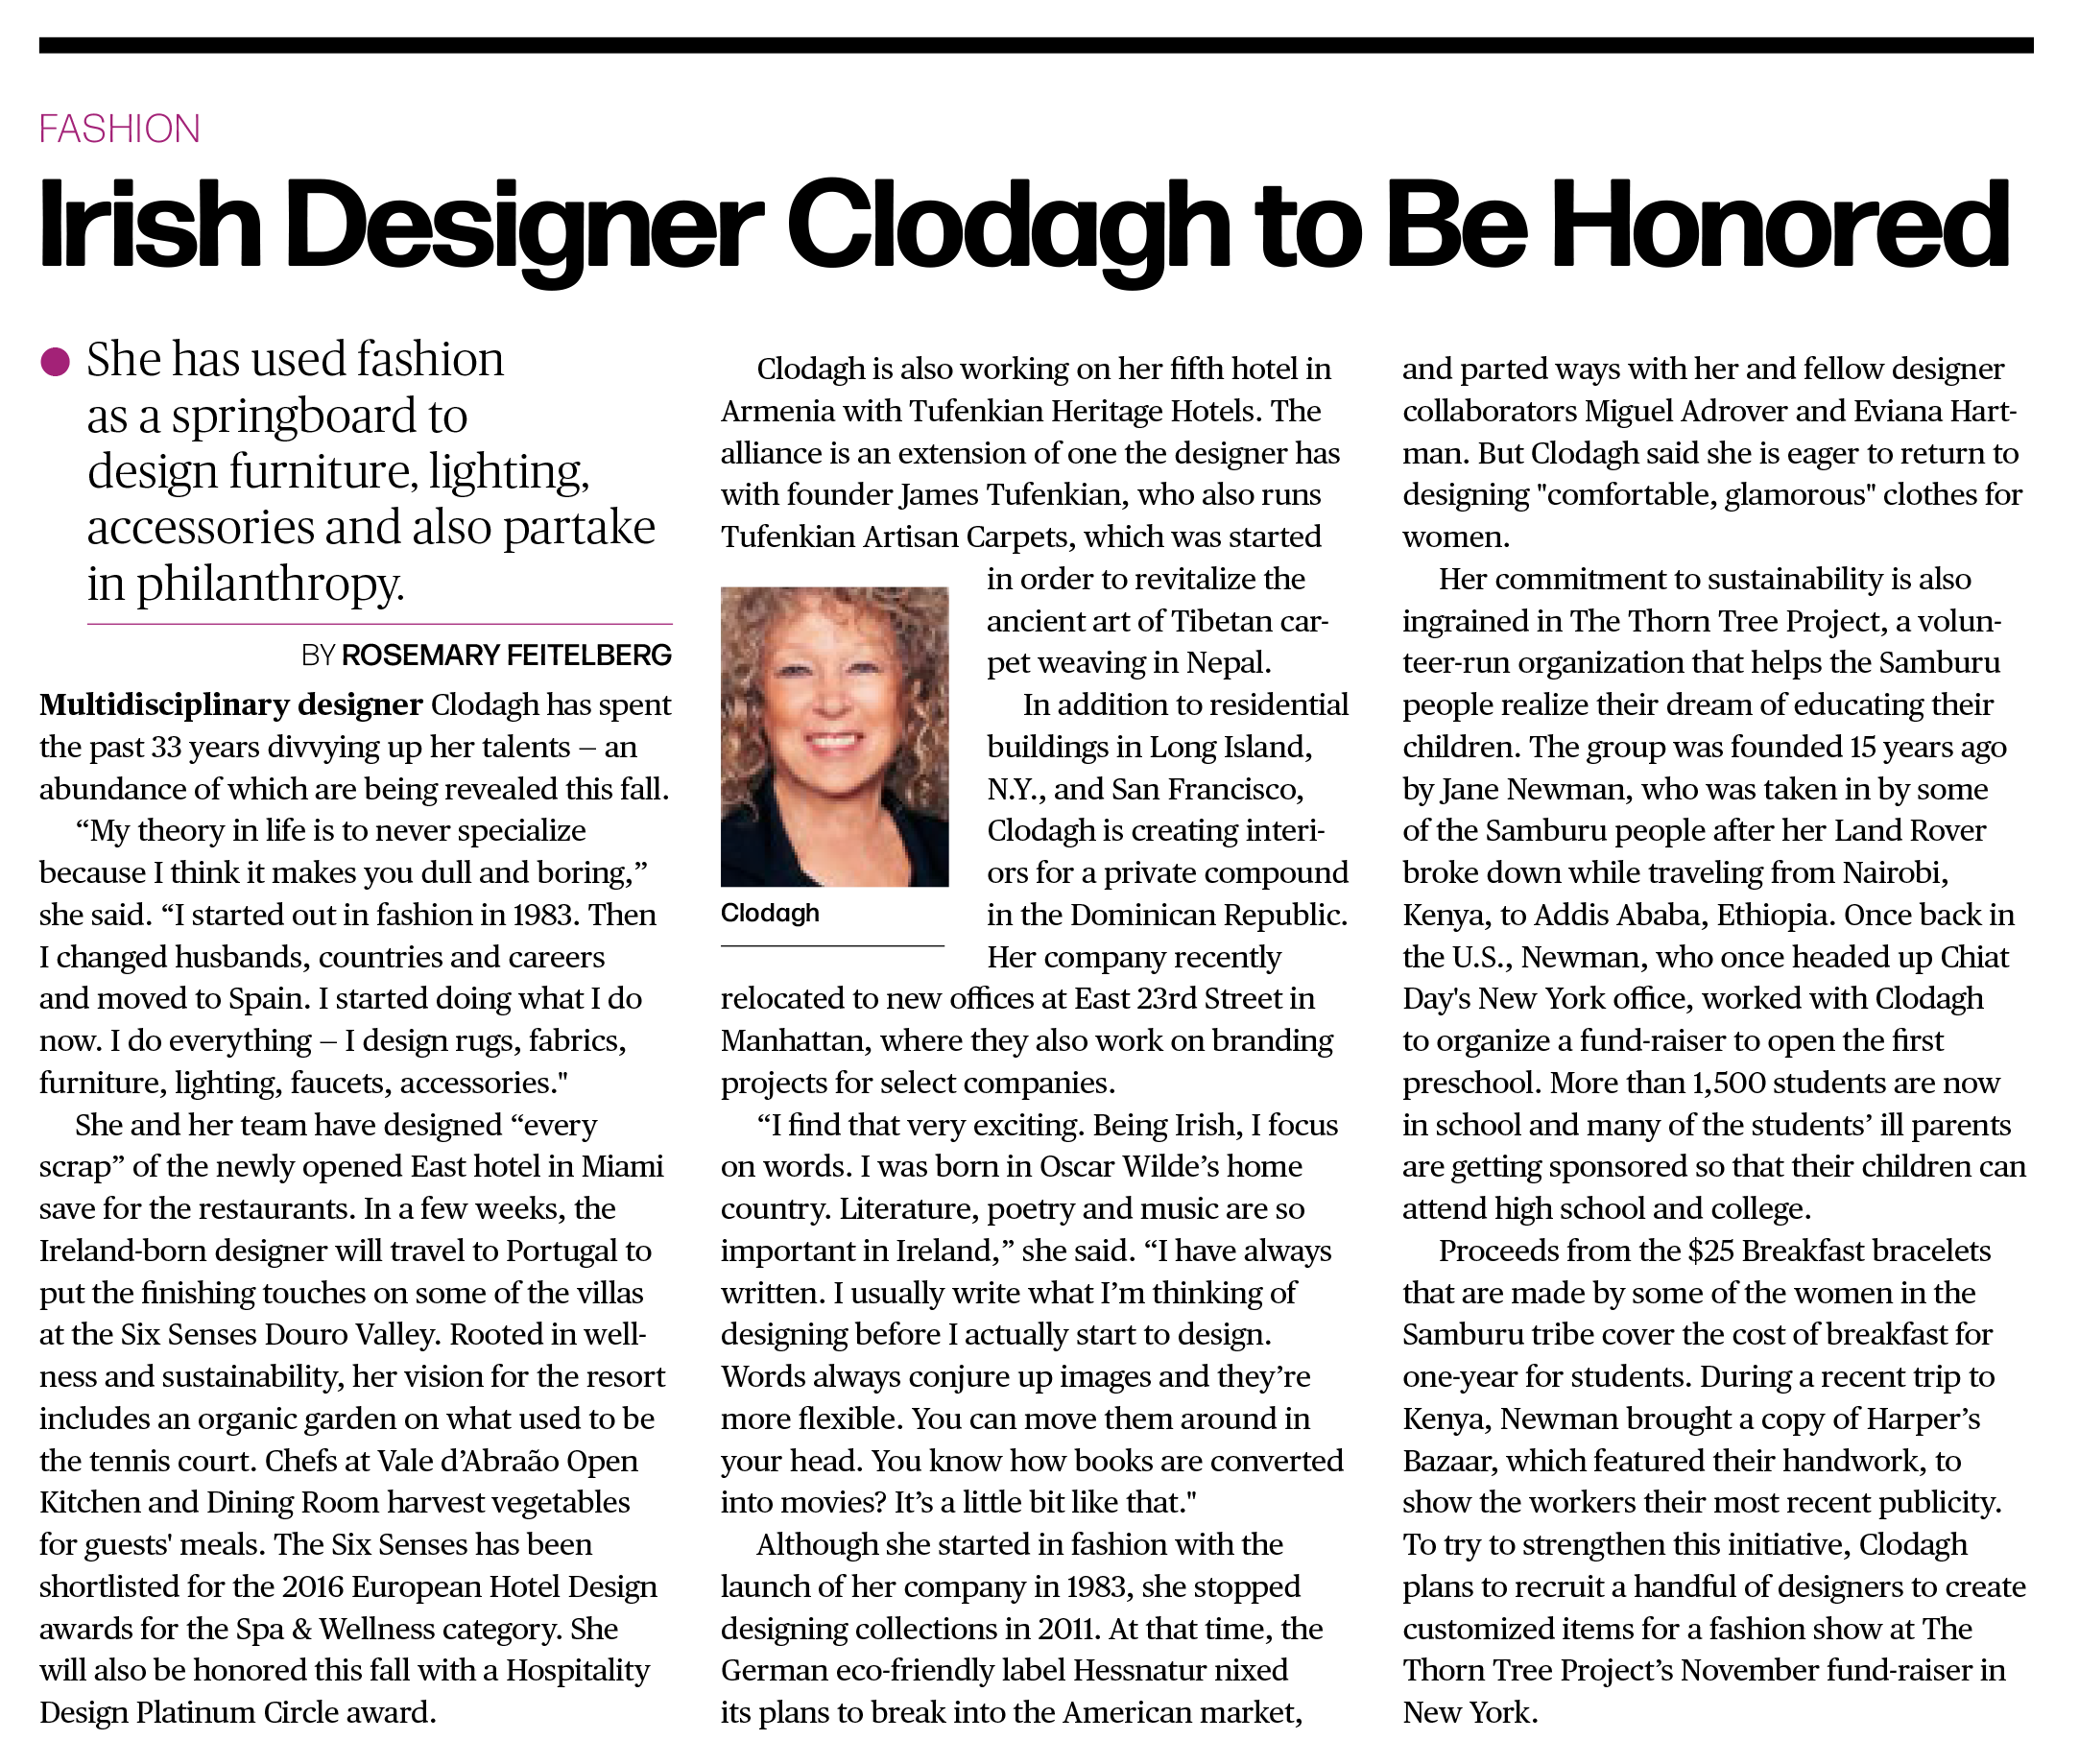 Clodagh to be Honored - via Women's Wear Daily, Aug 30th, 2016